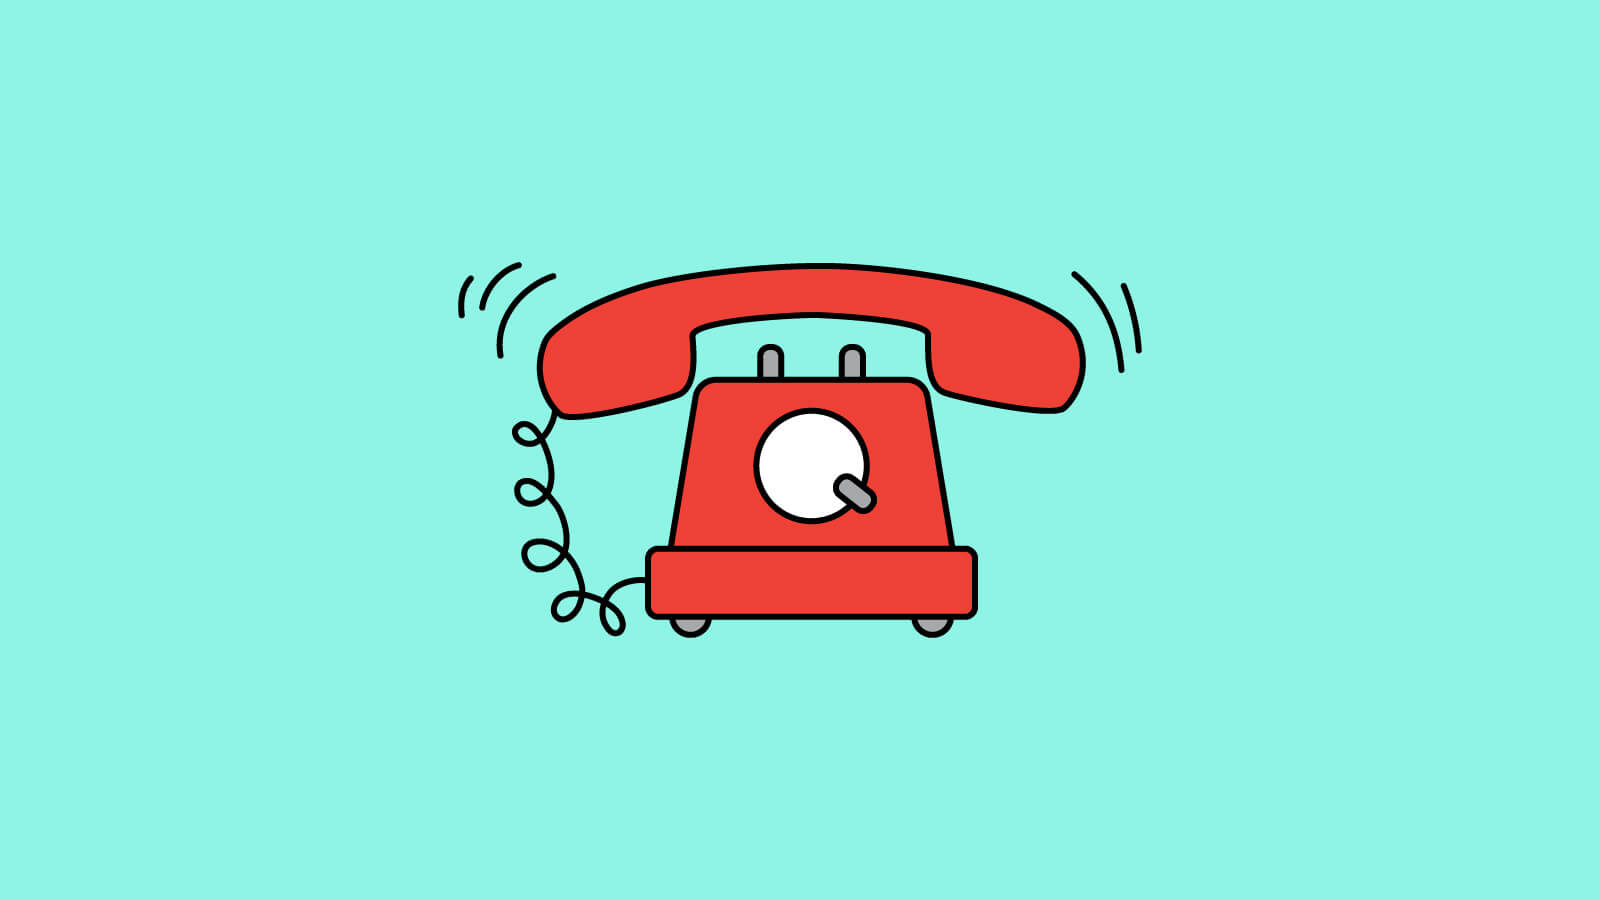 Phone Interview Coming Up 5 Ways To Make A Great First